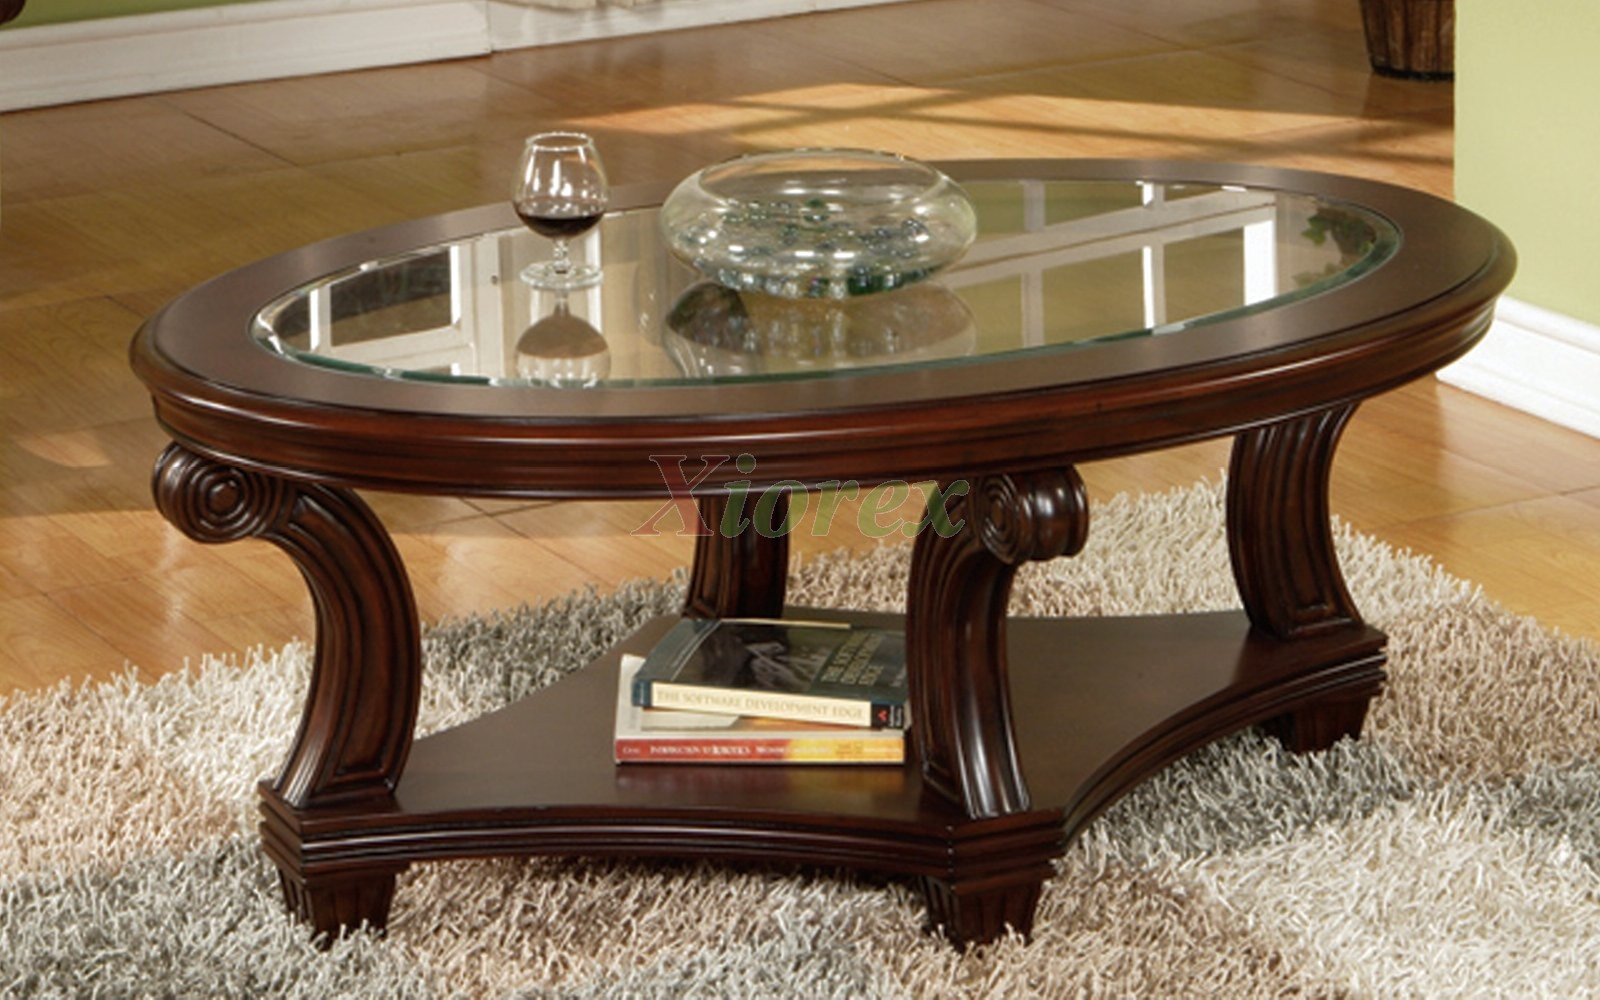 Oval Coffee Table Glass Top Perseus Glass Top Oval Coffee Table Montreal Oak Wooden Stained (Image 7 of 10)